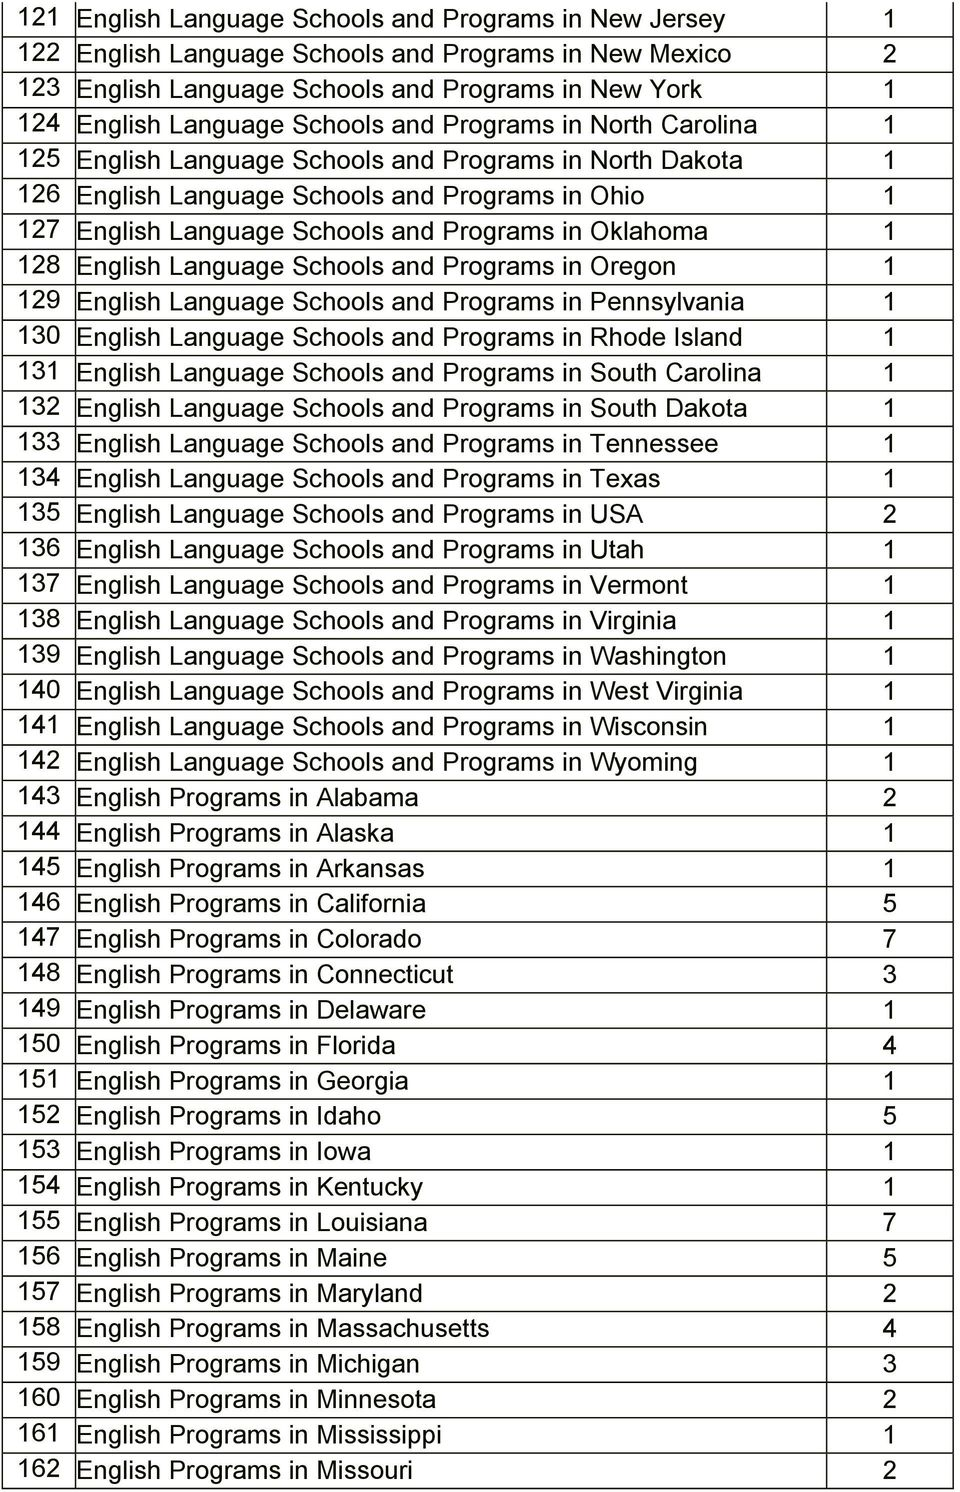 Oklahoma 1 128 English Language Schools and Programs in Oregon 1 129 English Language Schools and Programs in Pennsylvania 1 130 English Language Schools and Programs in Rhode Island 1 131 English